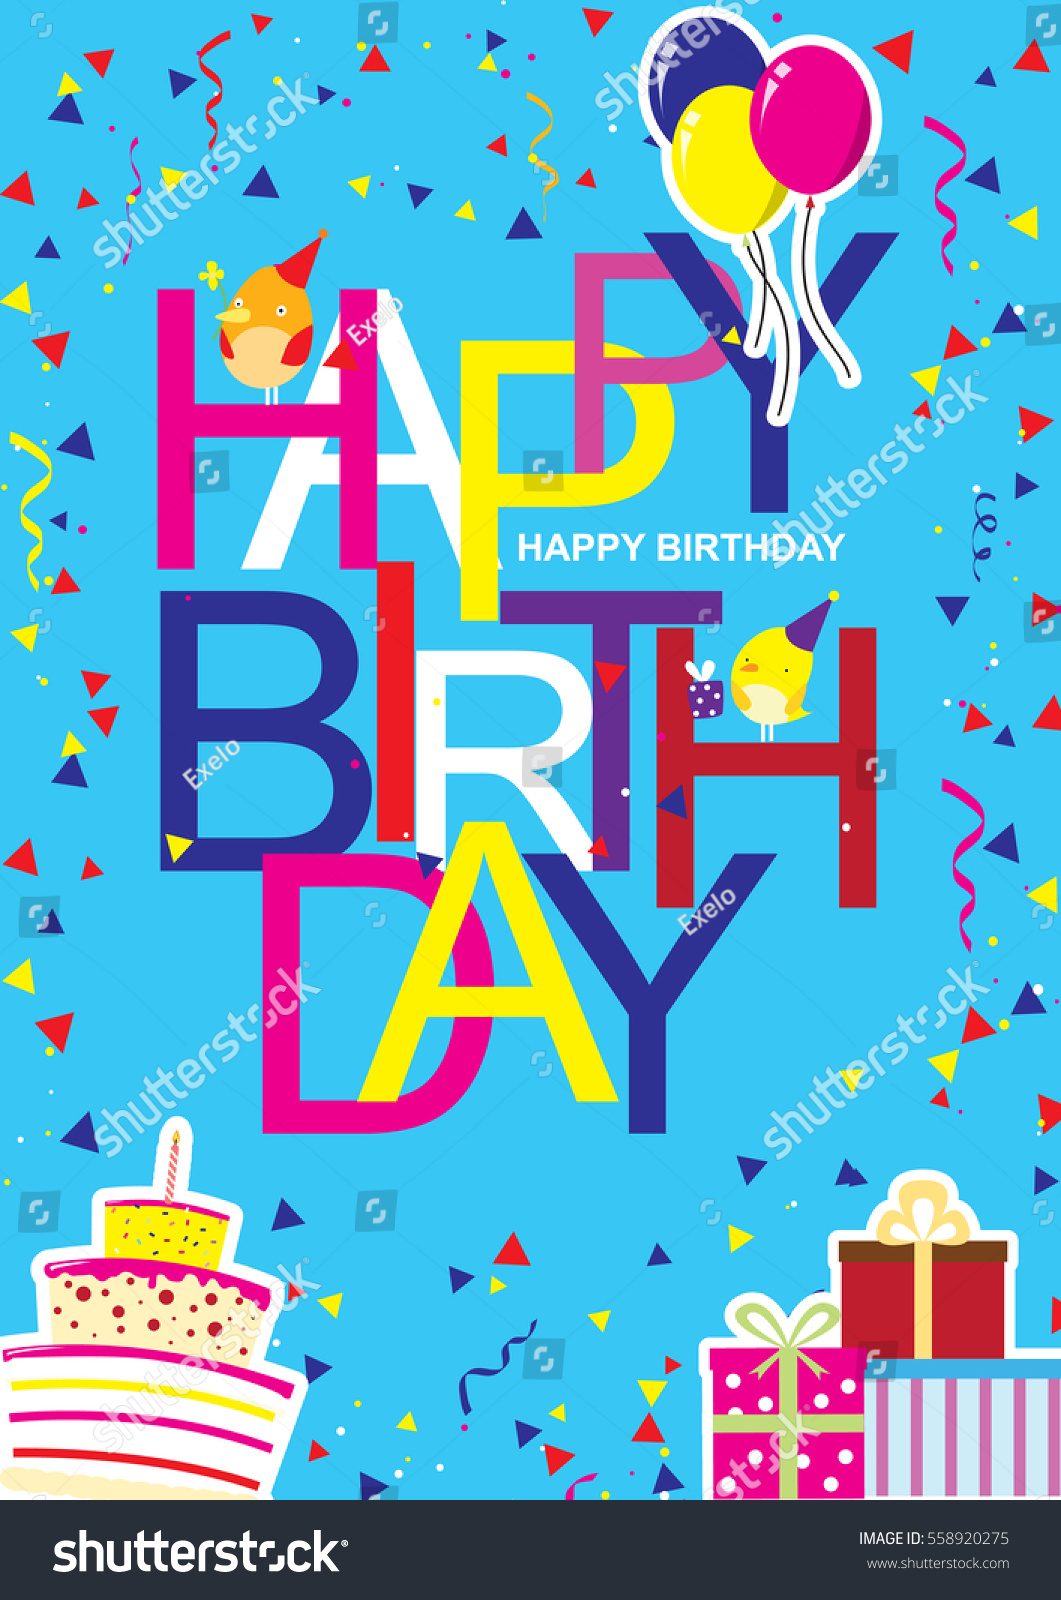 Creative modern birthday greeting card cool stock vector 558920275 creative modern birthday greeting card with cool and artistic font style and happy birthday wish with kristyandbryce Images